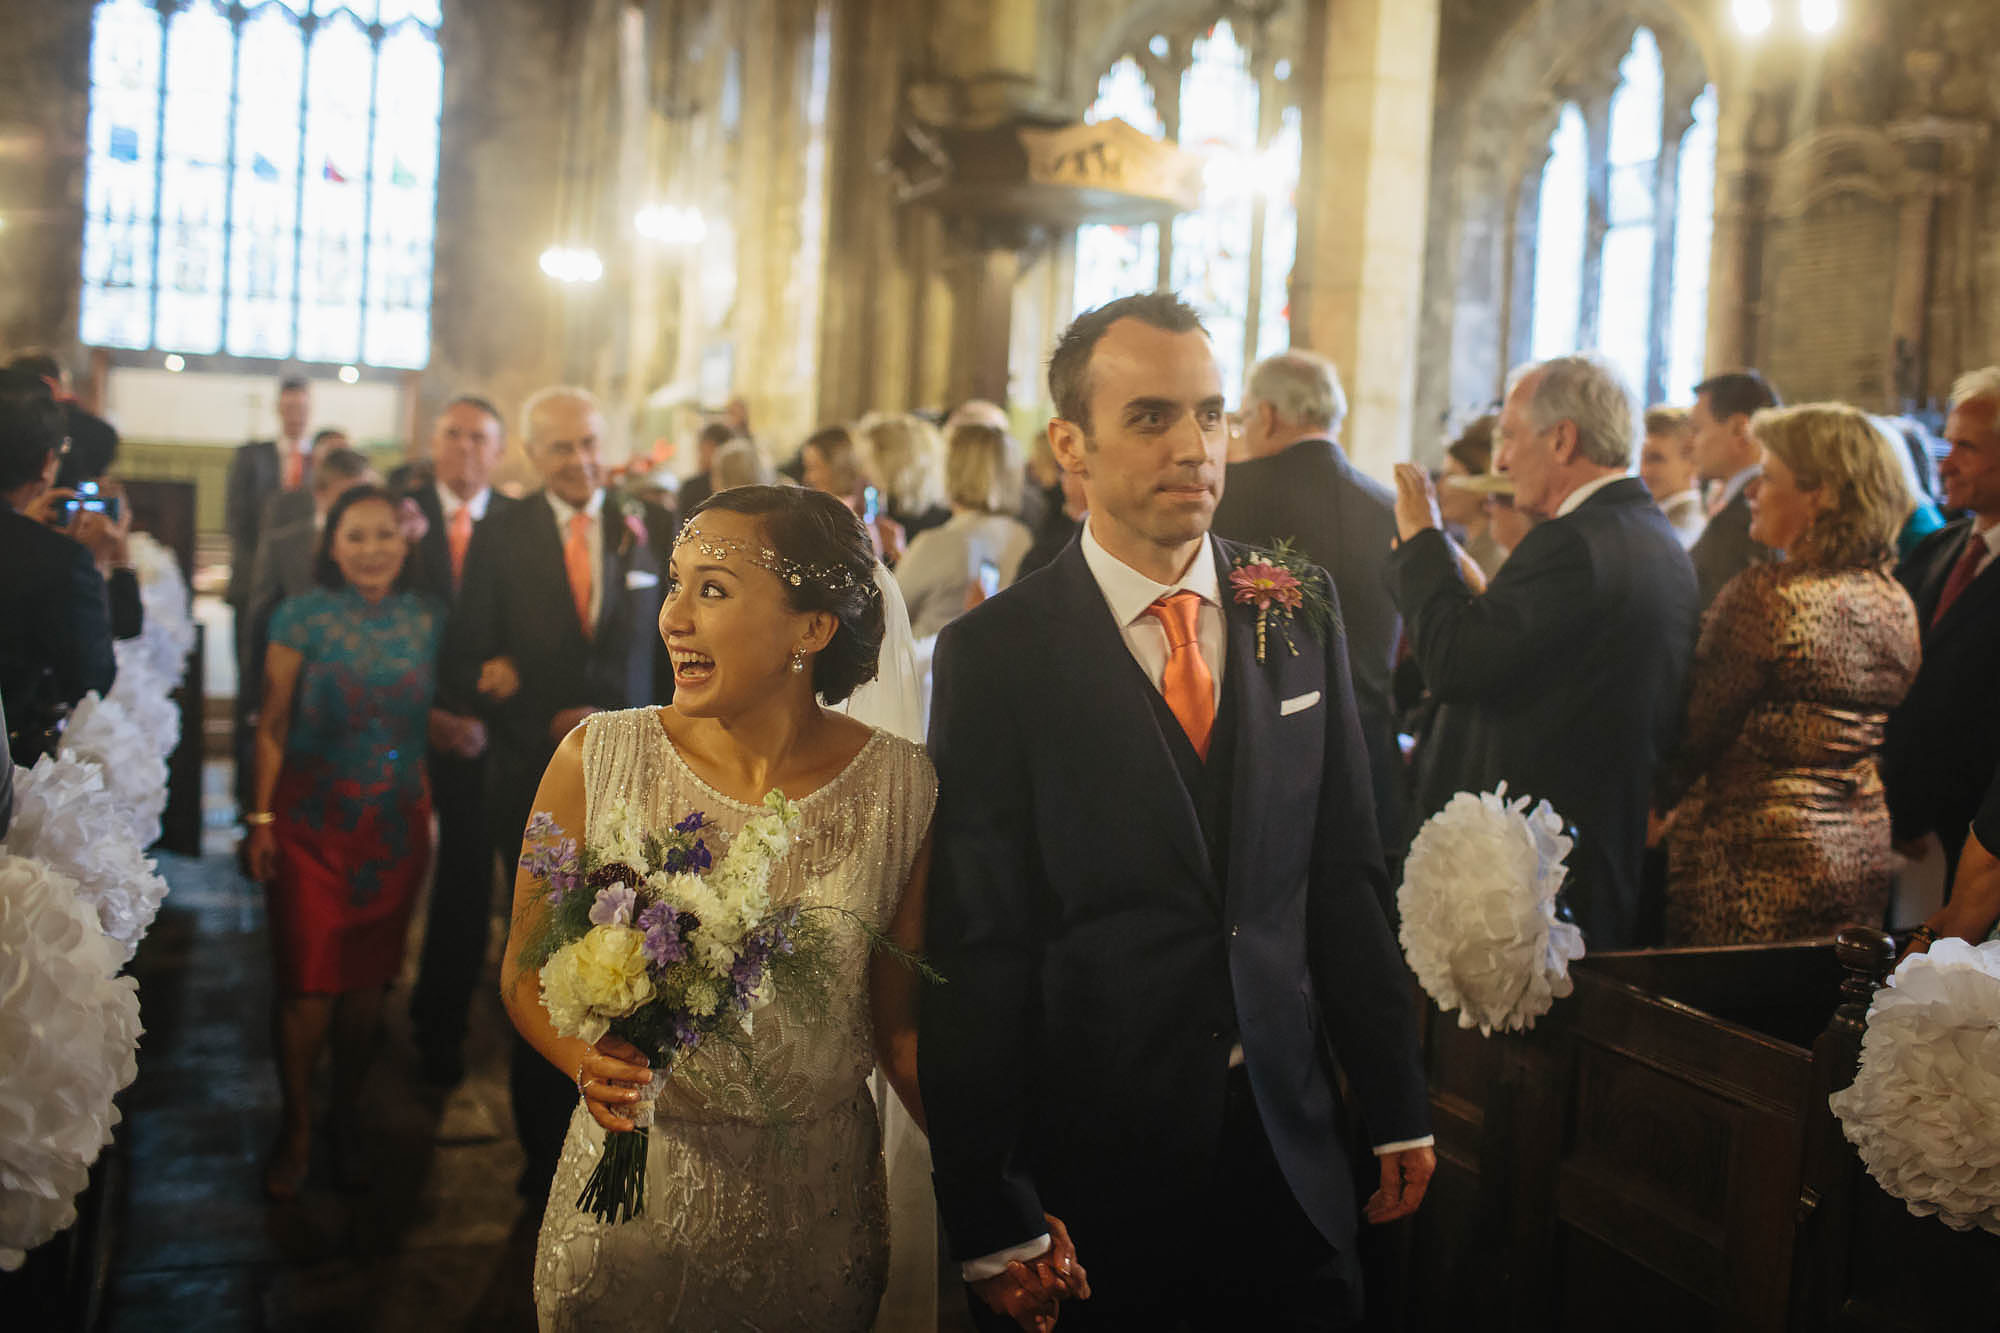 Bride and groom walk down the aisle of a church at their wedding